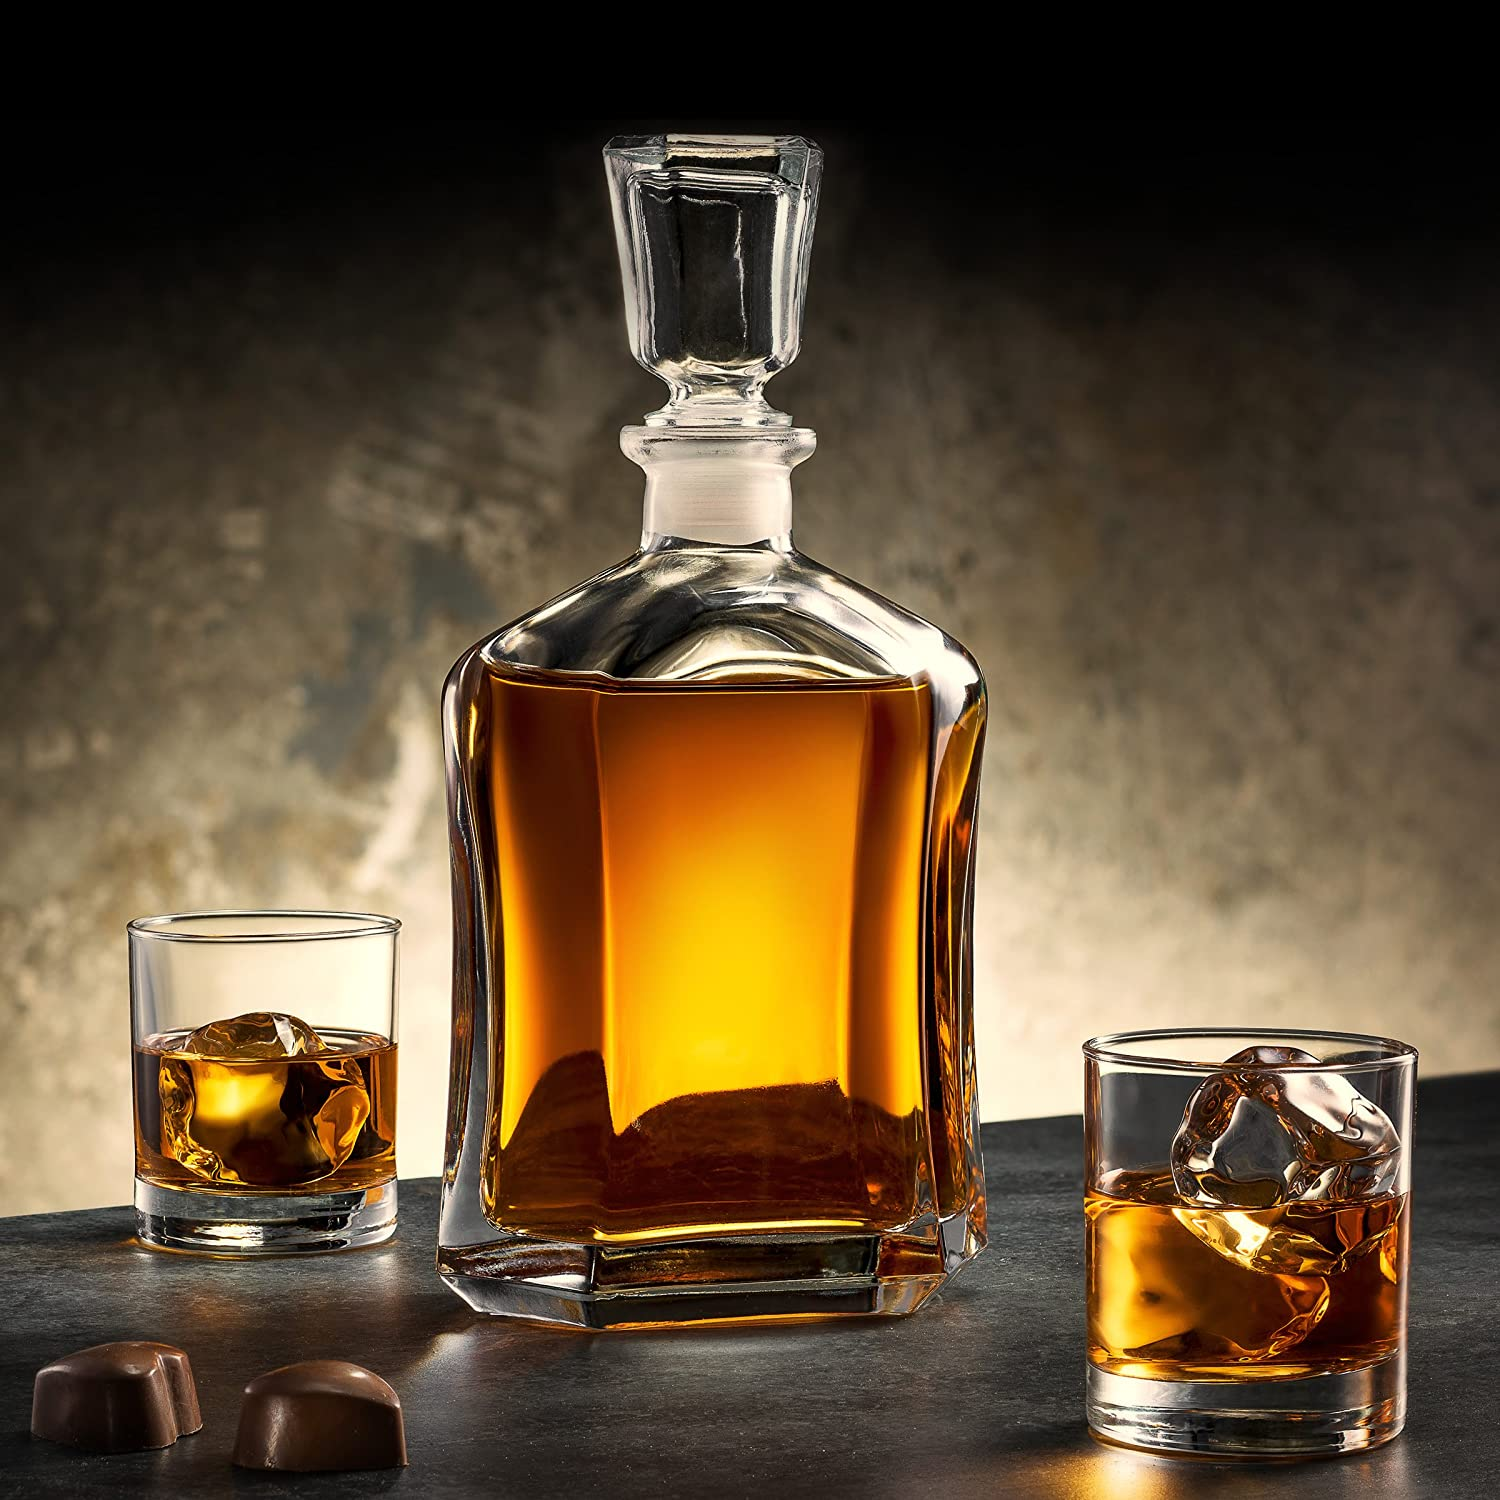 700 ml Universal Carafe You can Personalise Tumblers as Gift Murrano Classic Bourbon Whiskey Decanter Capitol Set of 2 Glasses Agent Gift for Couple